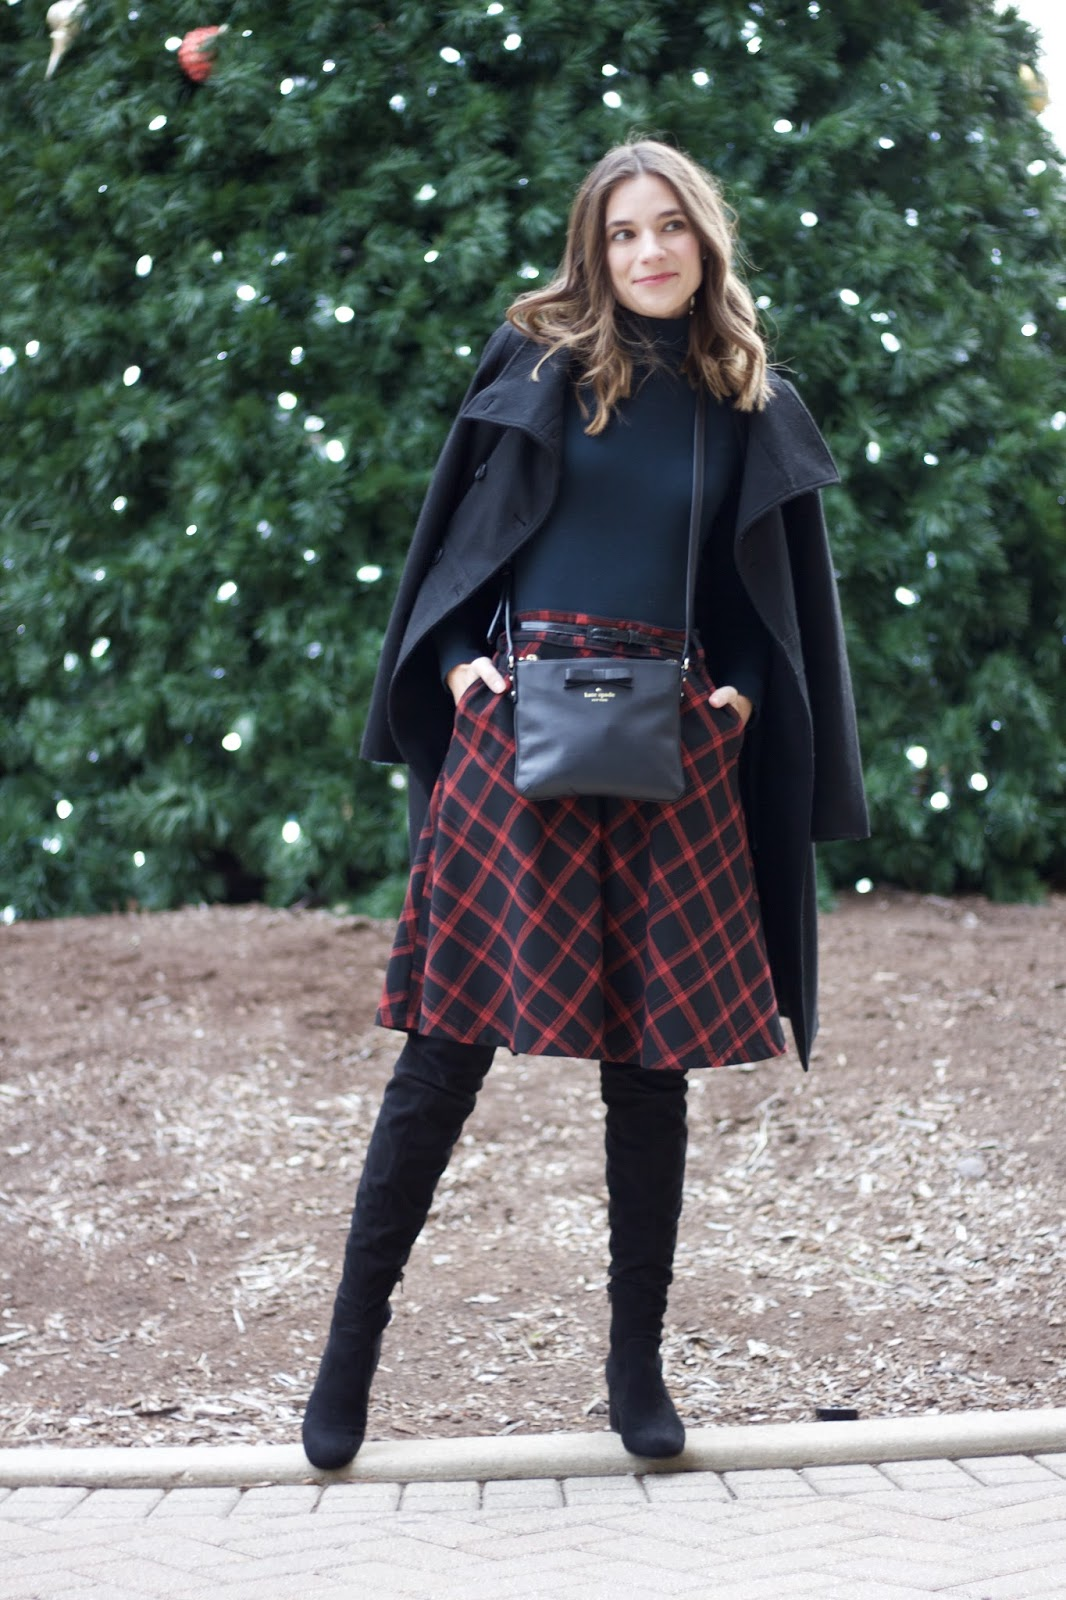 Red Urban Outfitters buffalo check skirt